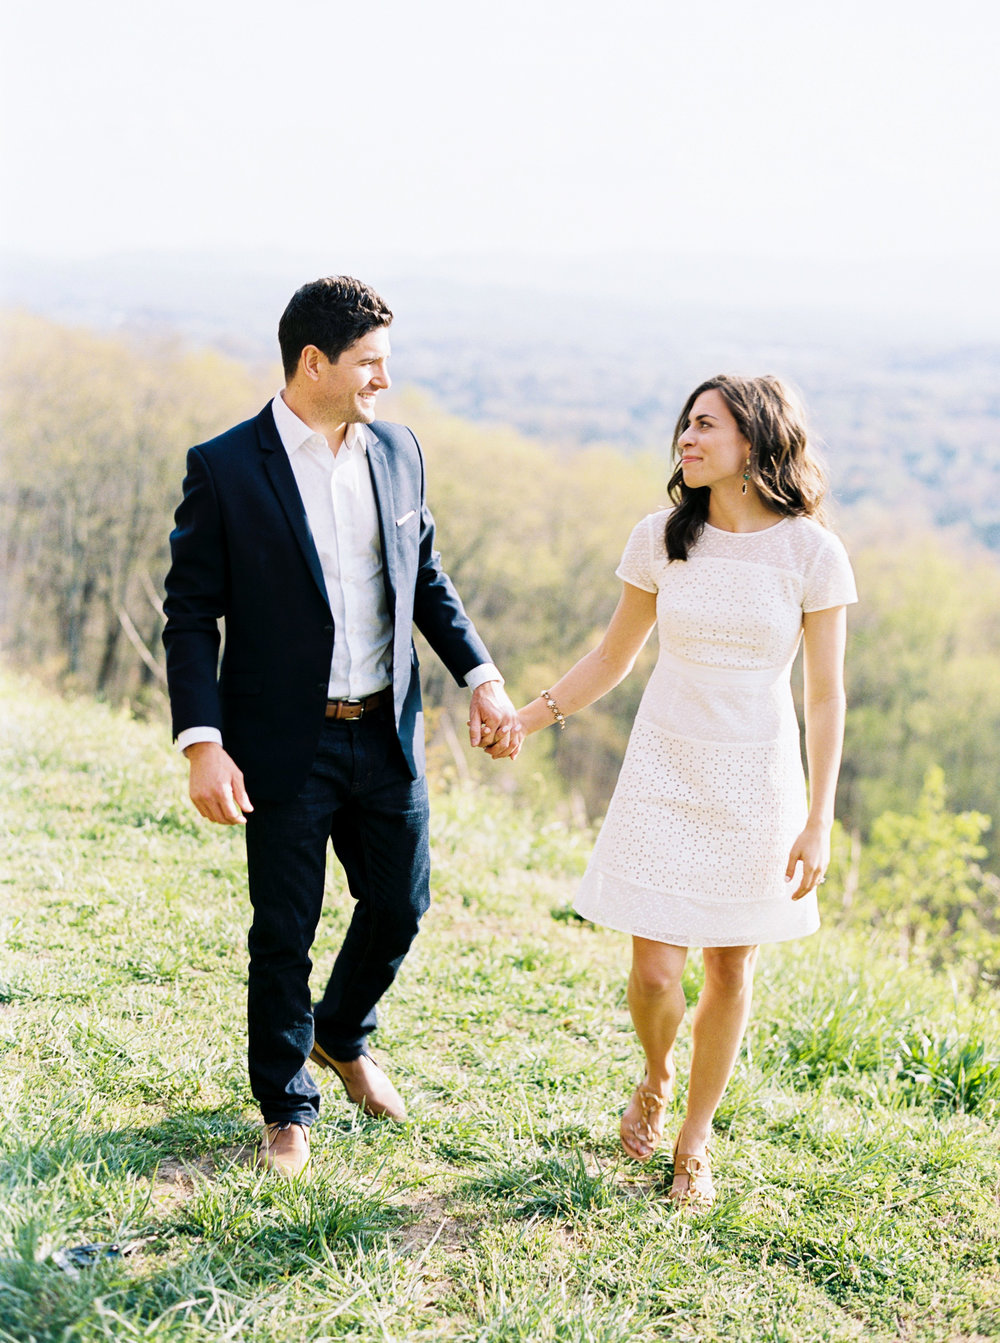 Engagement-Session-Asheville-wedding-photographer-5.jpg